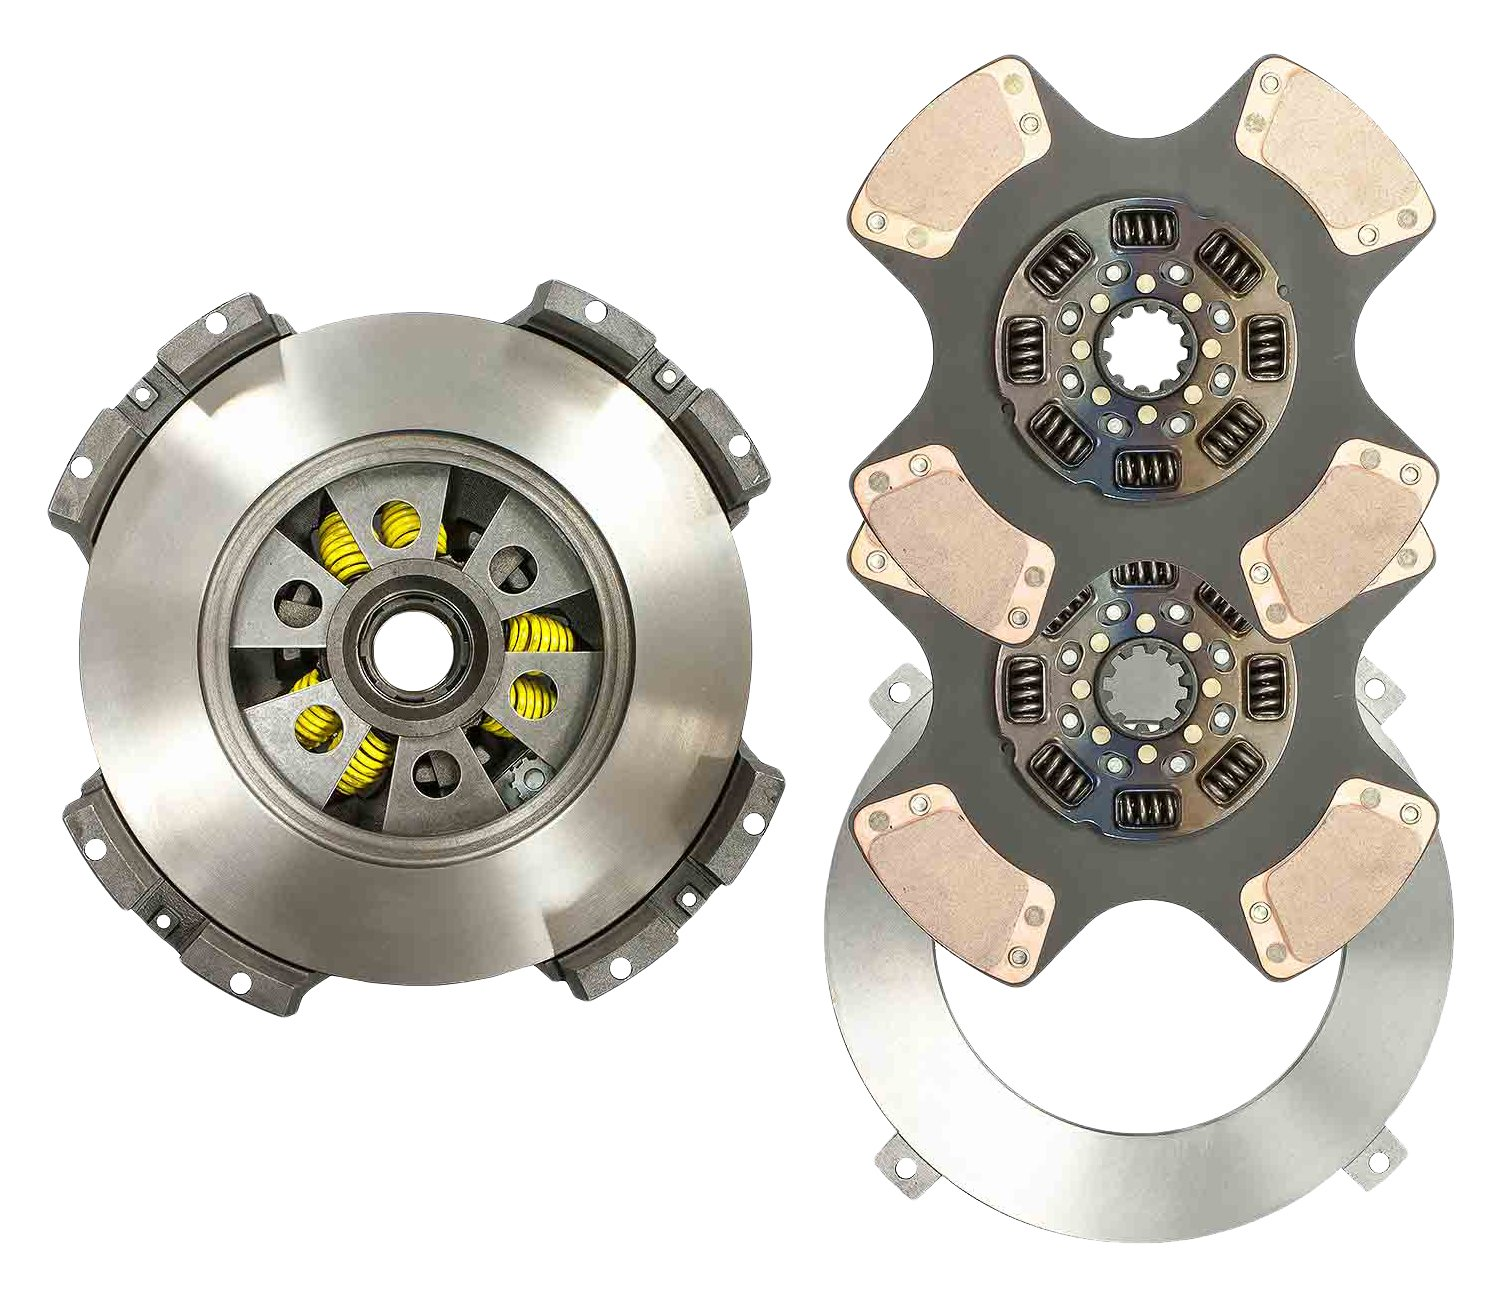 World American WA108391-81BW 15.5'' x 2'' EZ Touch Ceramic Clutch Kit, 4 Paddle, 8 Springs